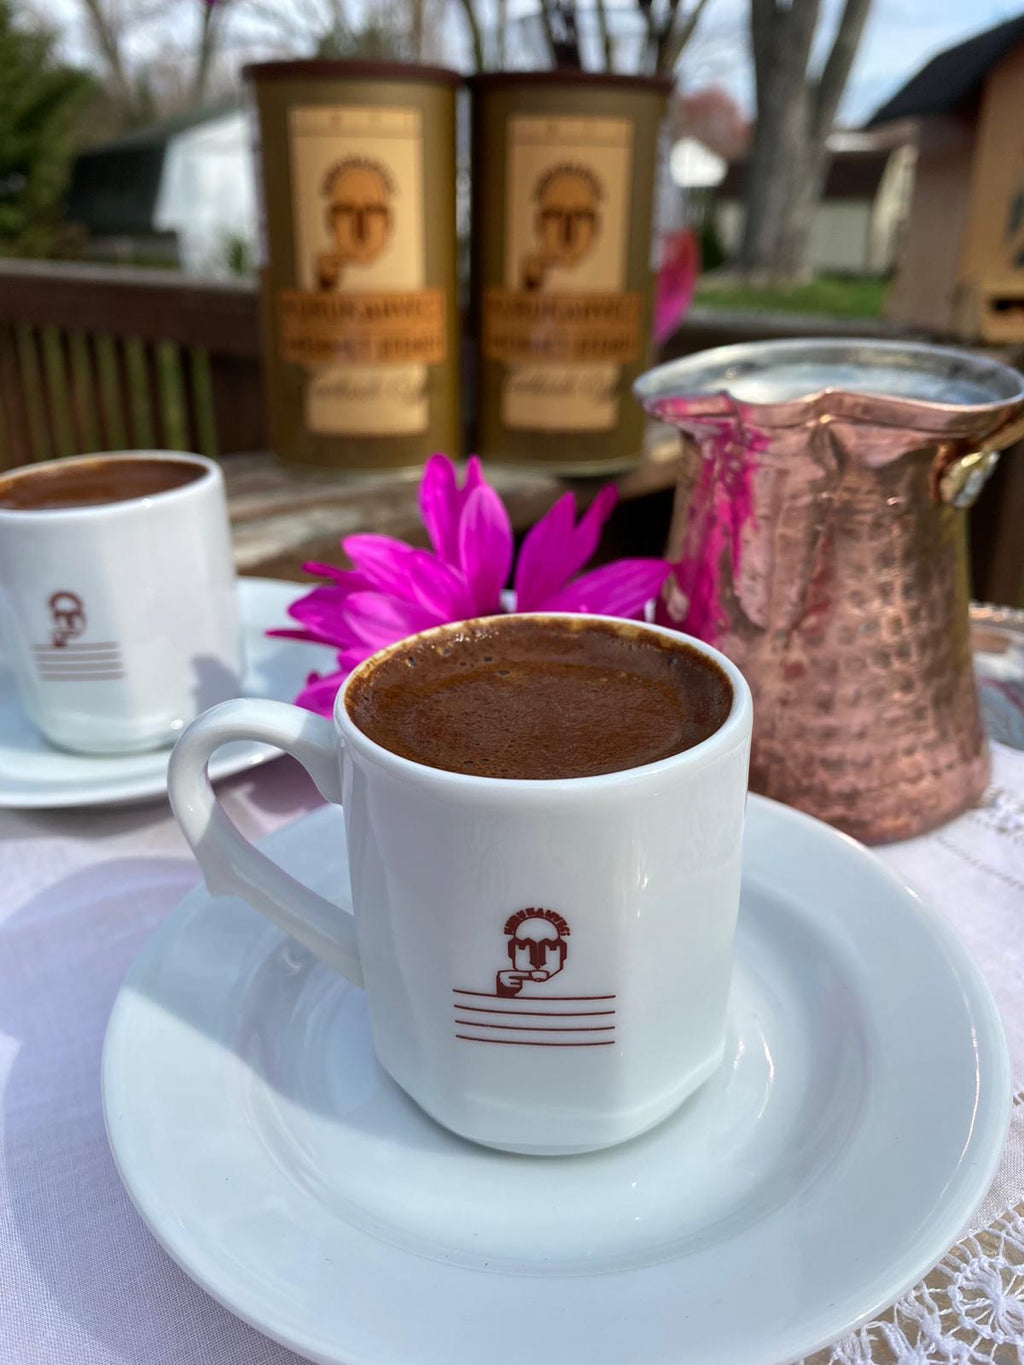 [Turkish Delight] - turkishcoffeelady